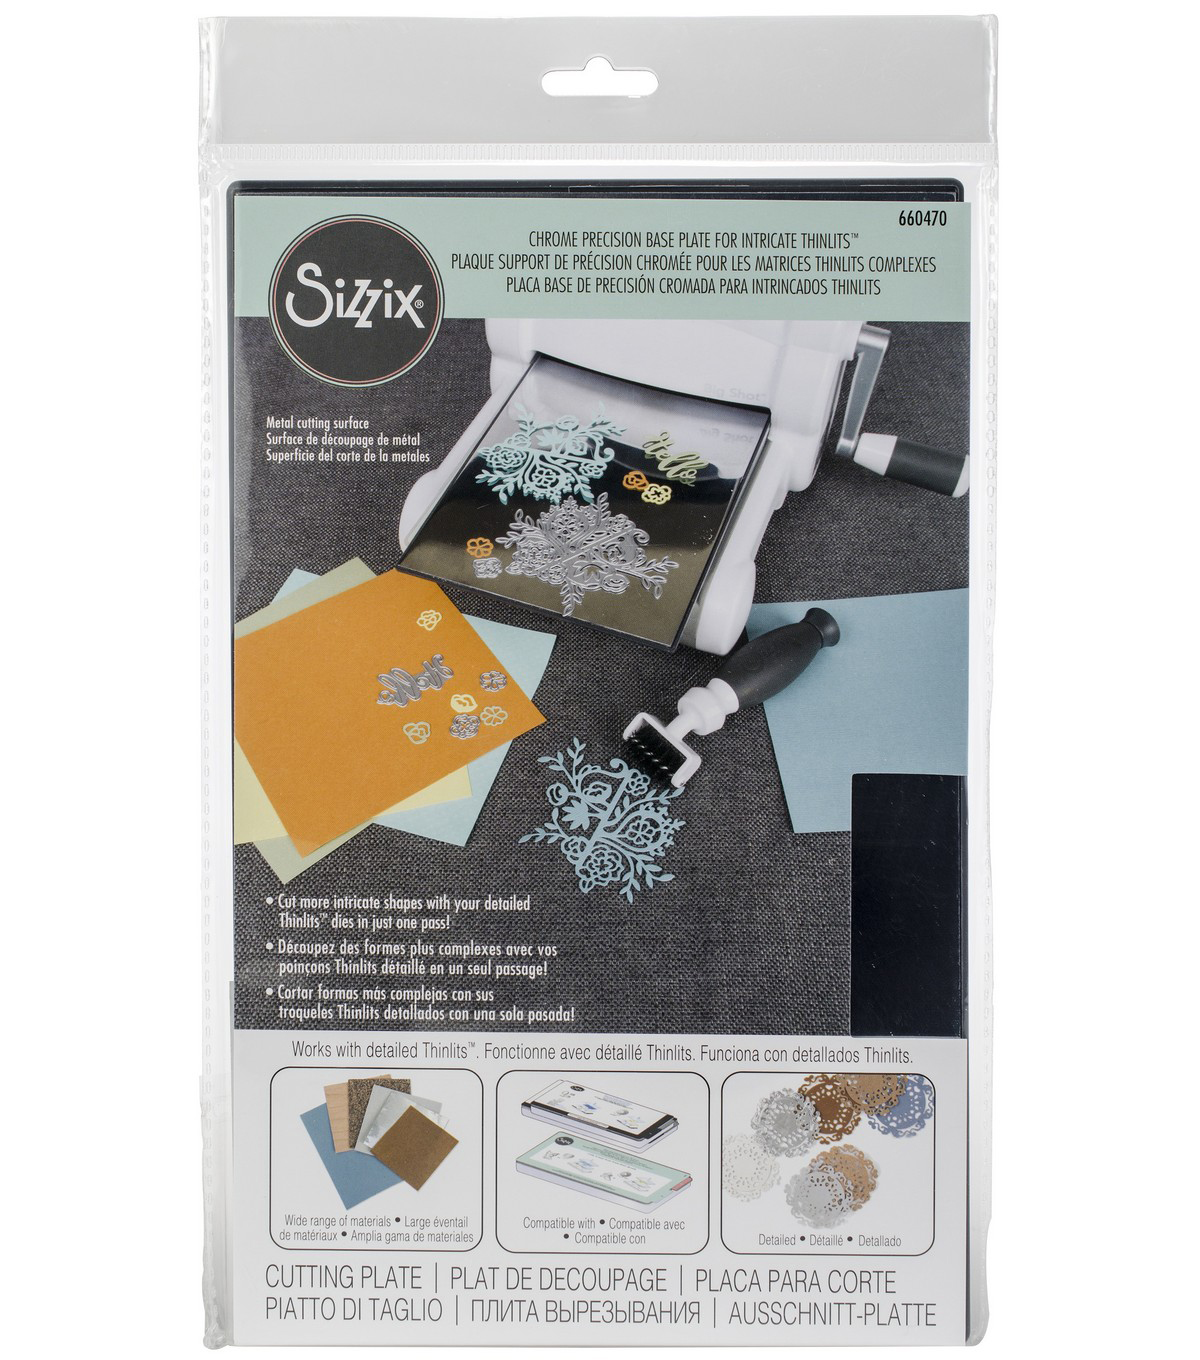 Sizzix Chrome Precision Base Plate For Intricate Thinlits-